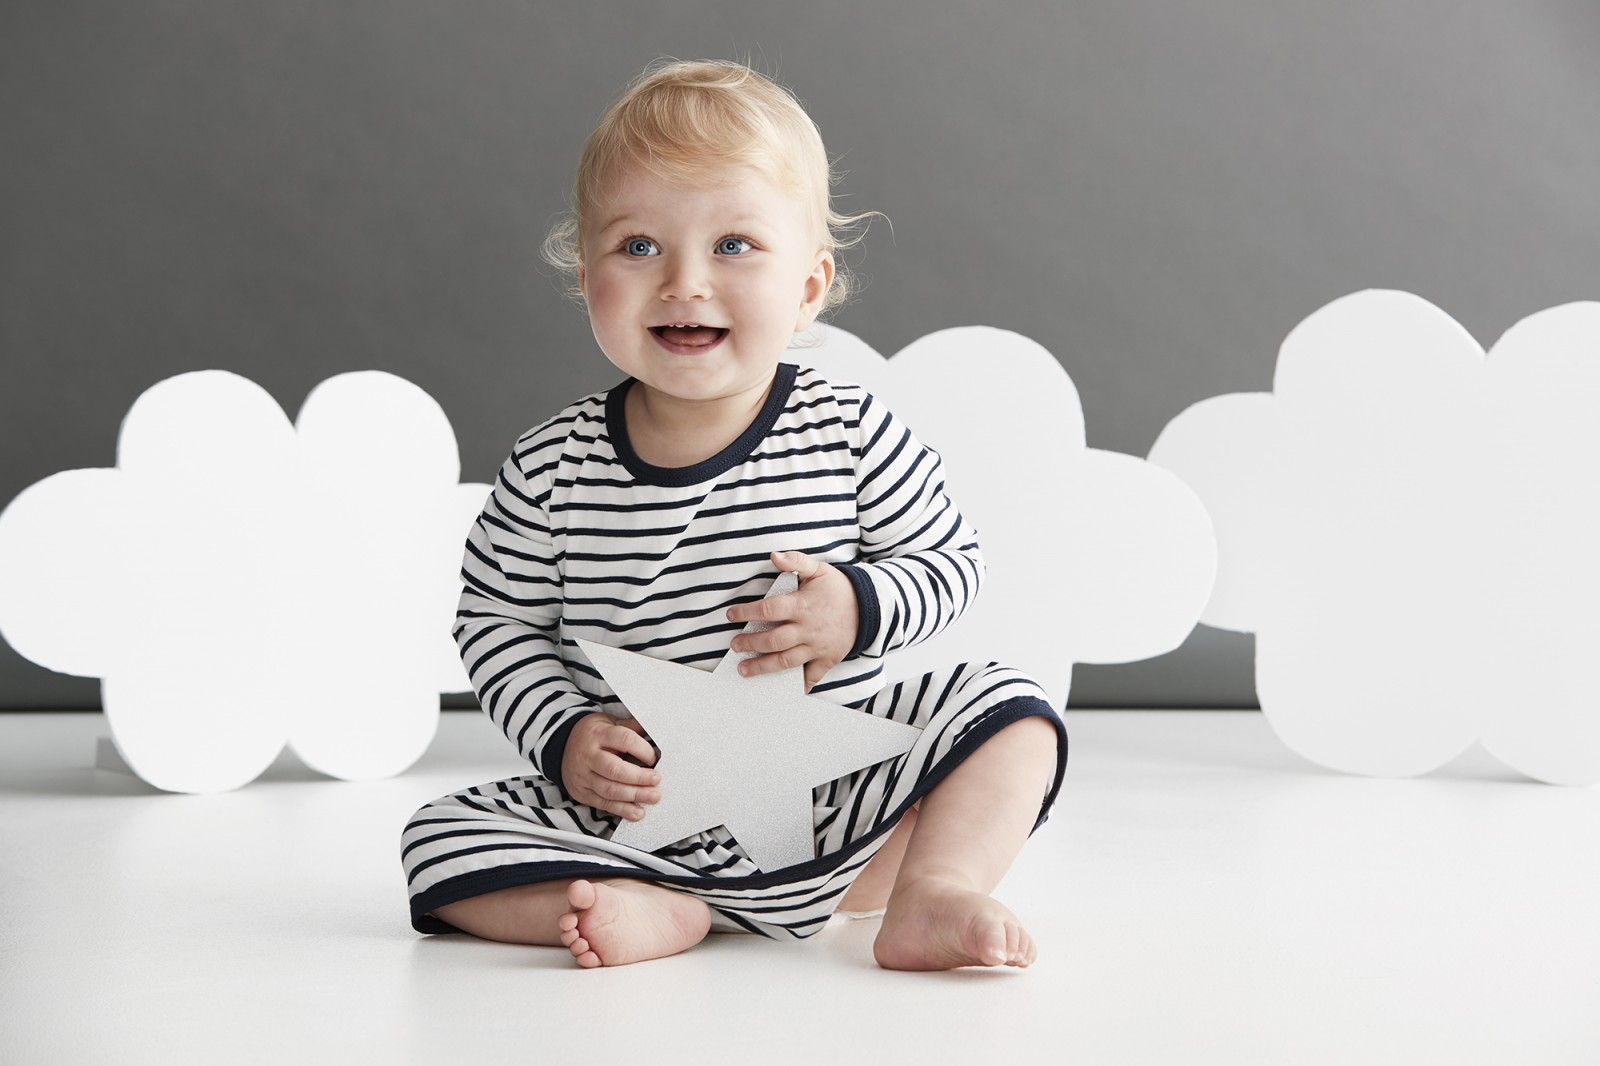 Michelle Young, sydneys leading kids and babies fashion photographer, photographs gorgeous babies for the latest Broken Tricycle fashion campaign and lookbook. All gorgeous babies and kids...